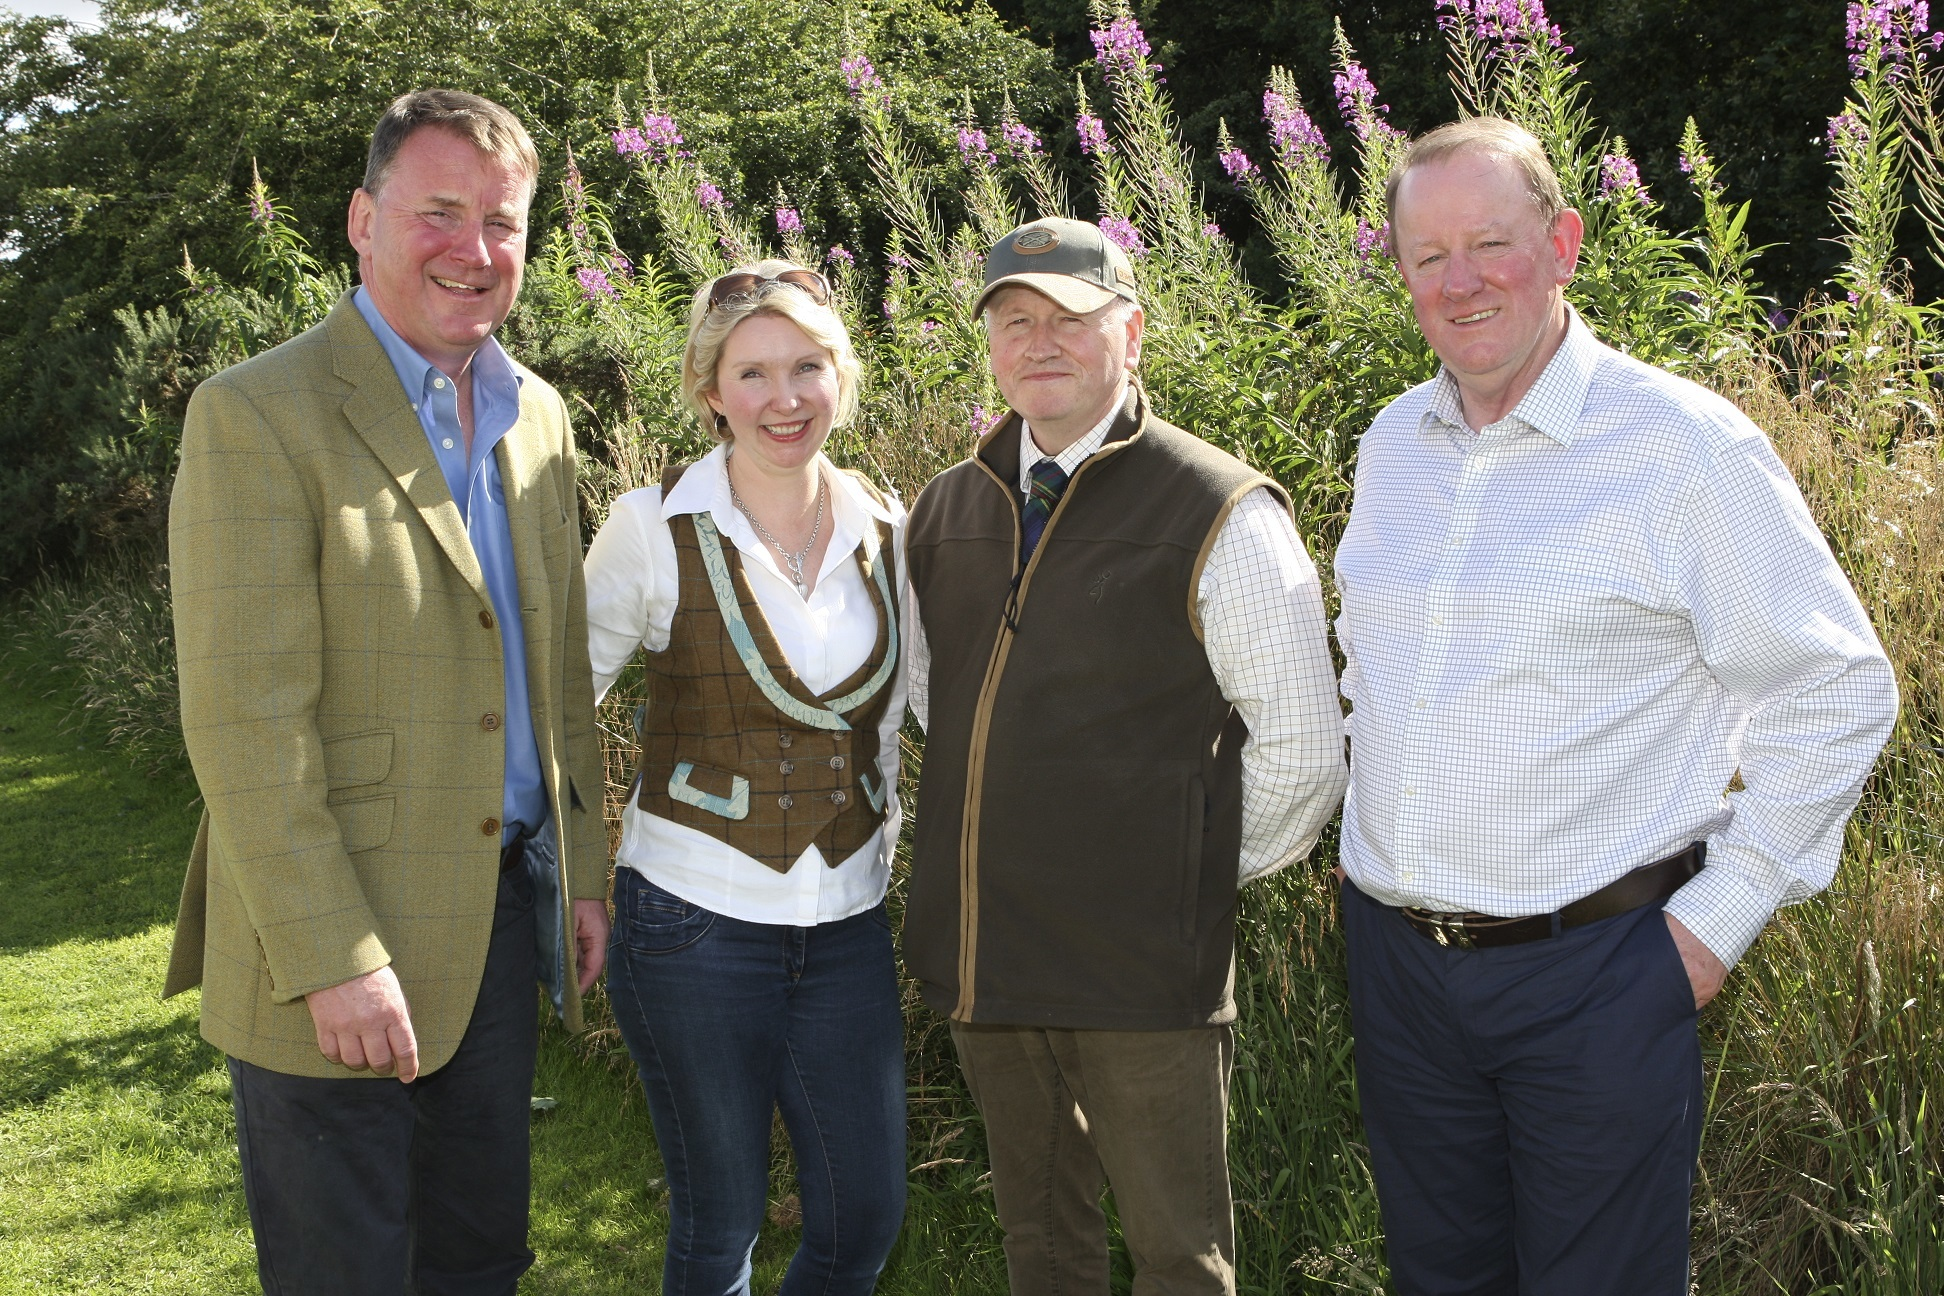 Shoot Charitable Trust trustees Wille Allan, Fay Bancewicz, Grant Yorke and Gerard Eadie.